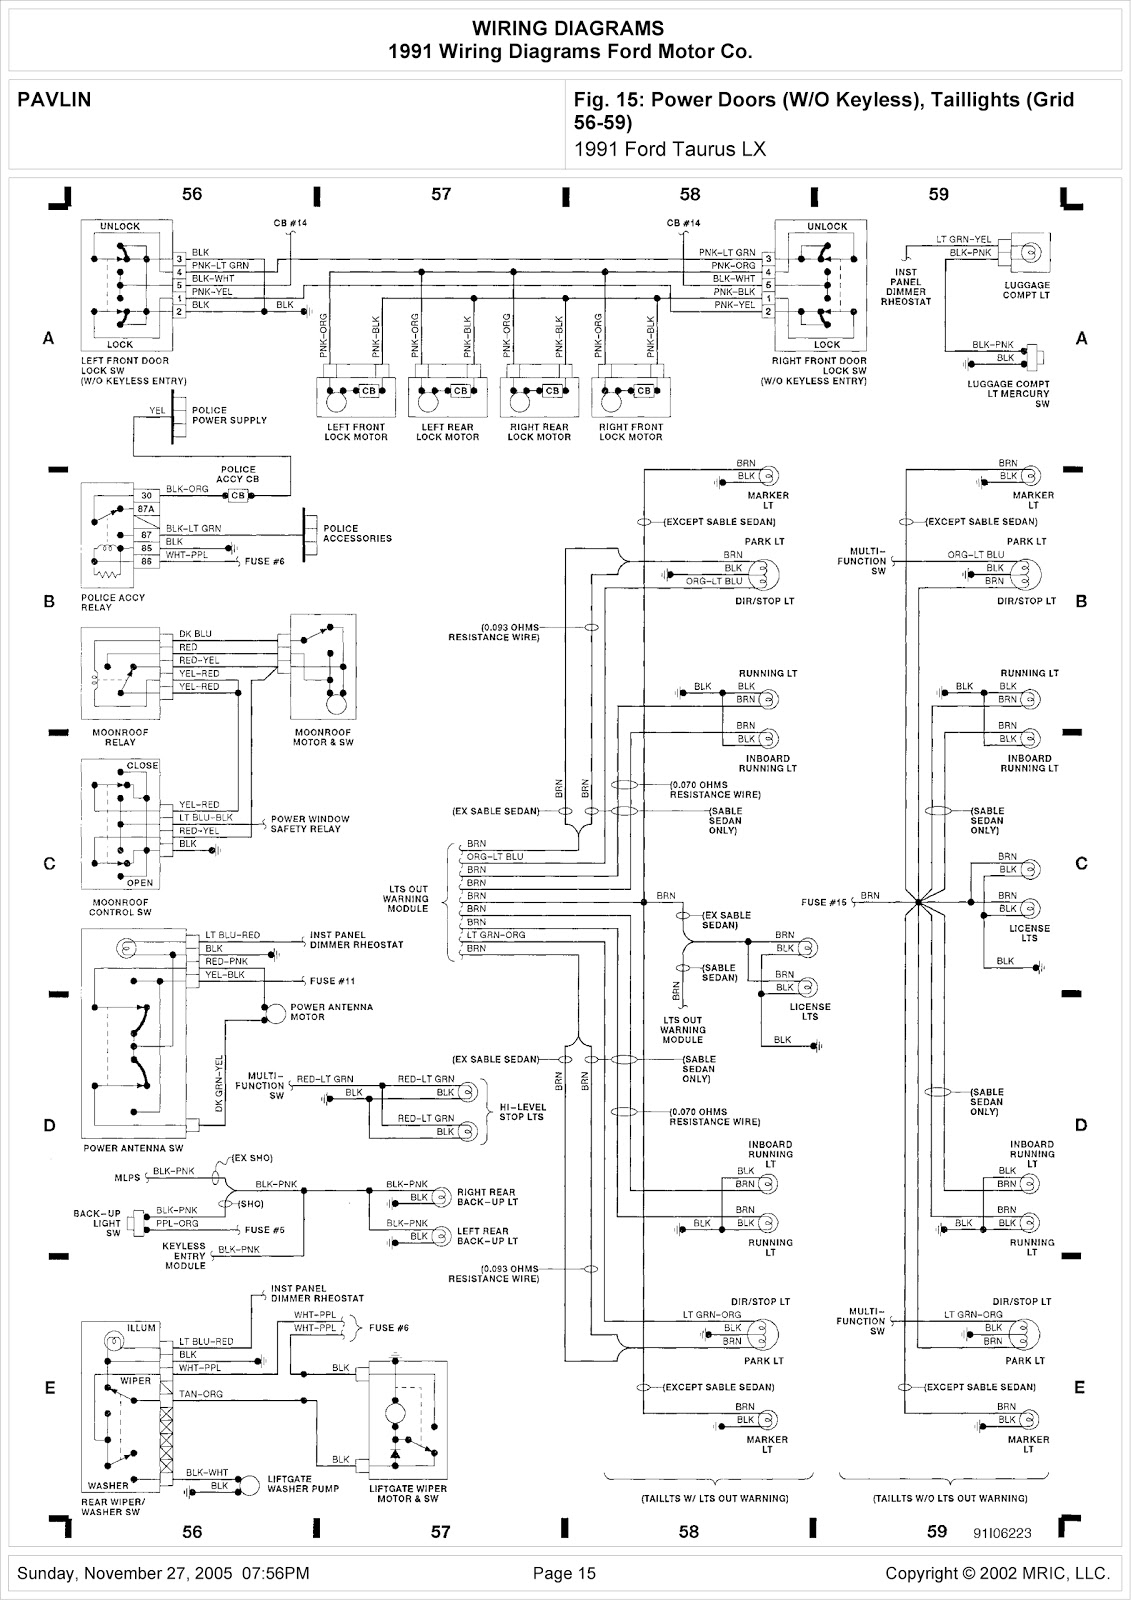 1991 ford taurus lx system wiring diagram power doors ... 2011 ford taurus wiring diagram